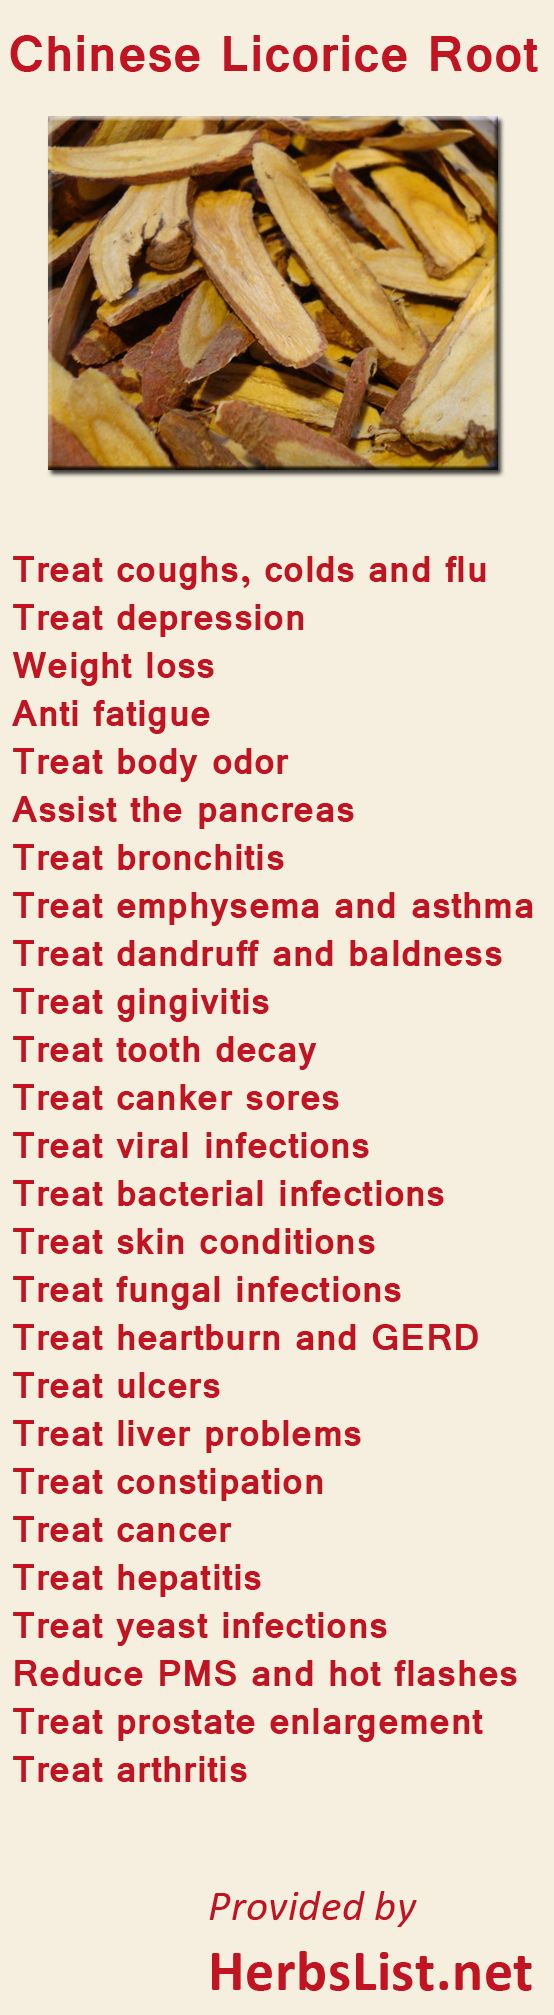 Health benefits of Chinese Licorice Root. Find our how herbs can help you @ drmalikov.com